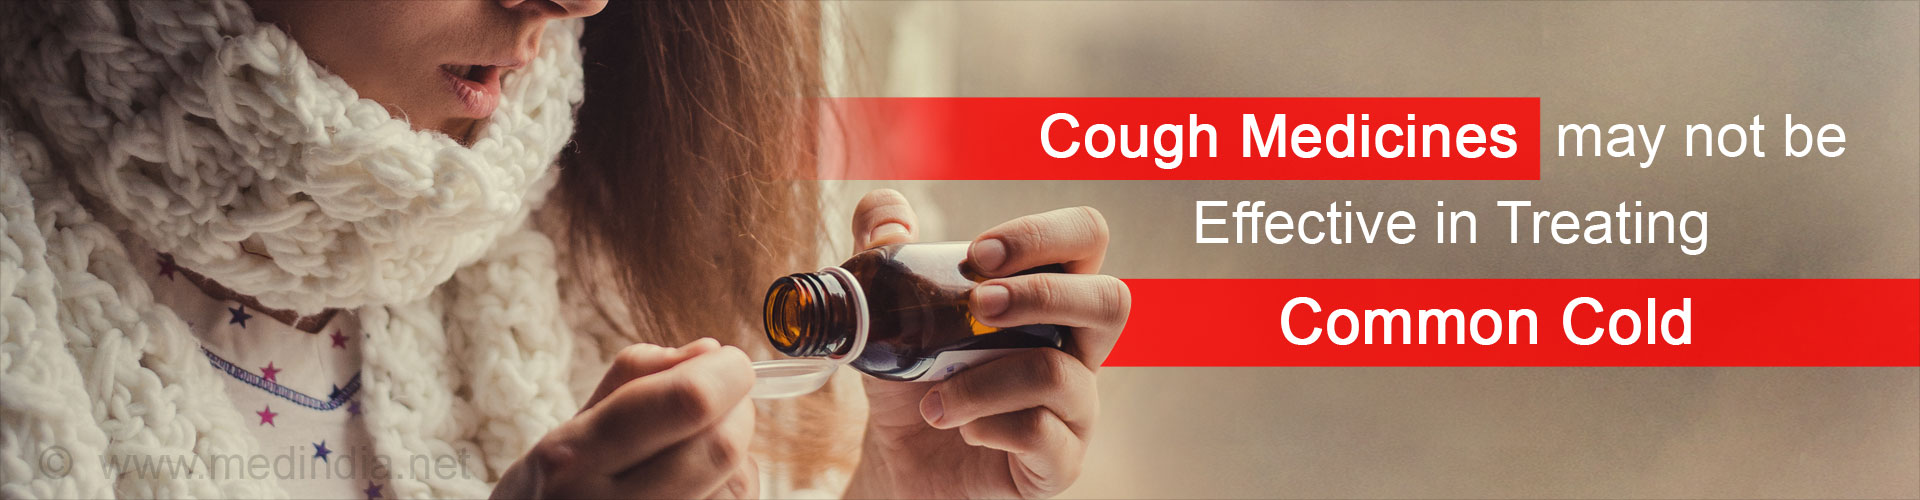 Cough Medicines Found to Be Useless in Common Cold Treatment